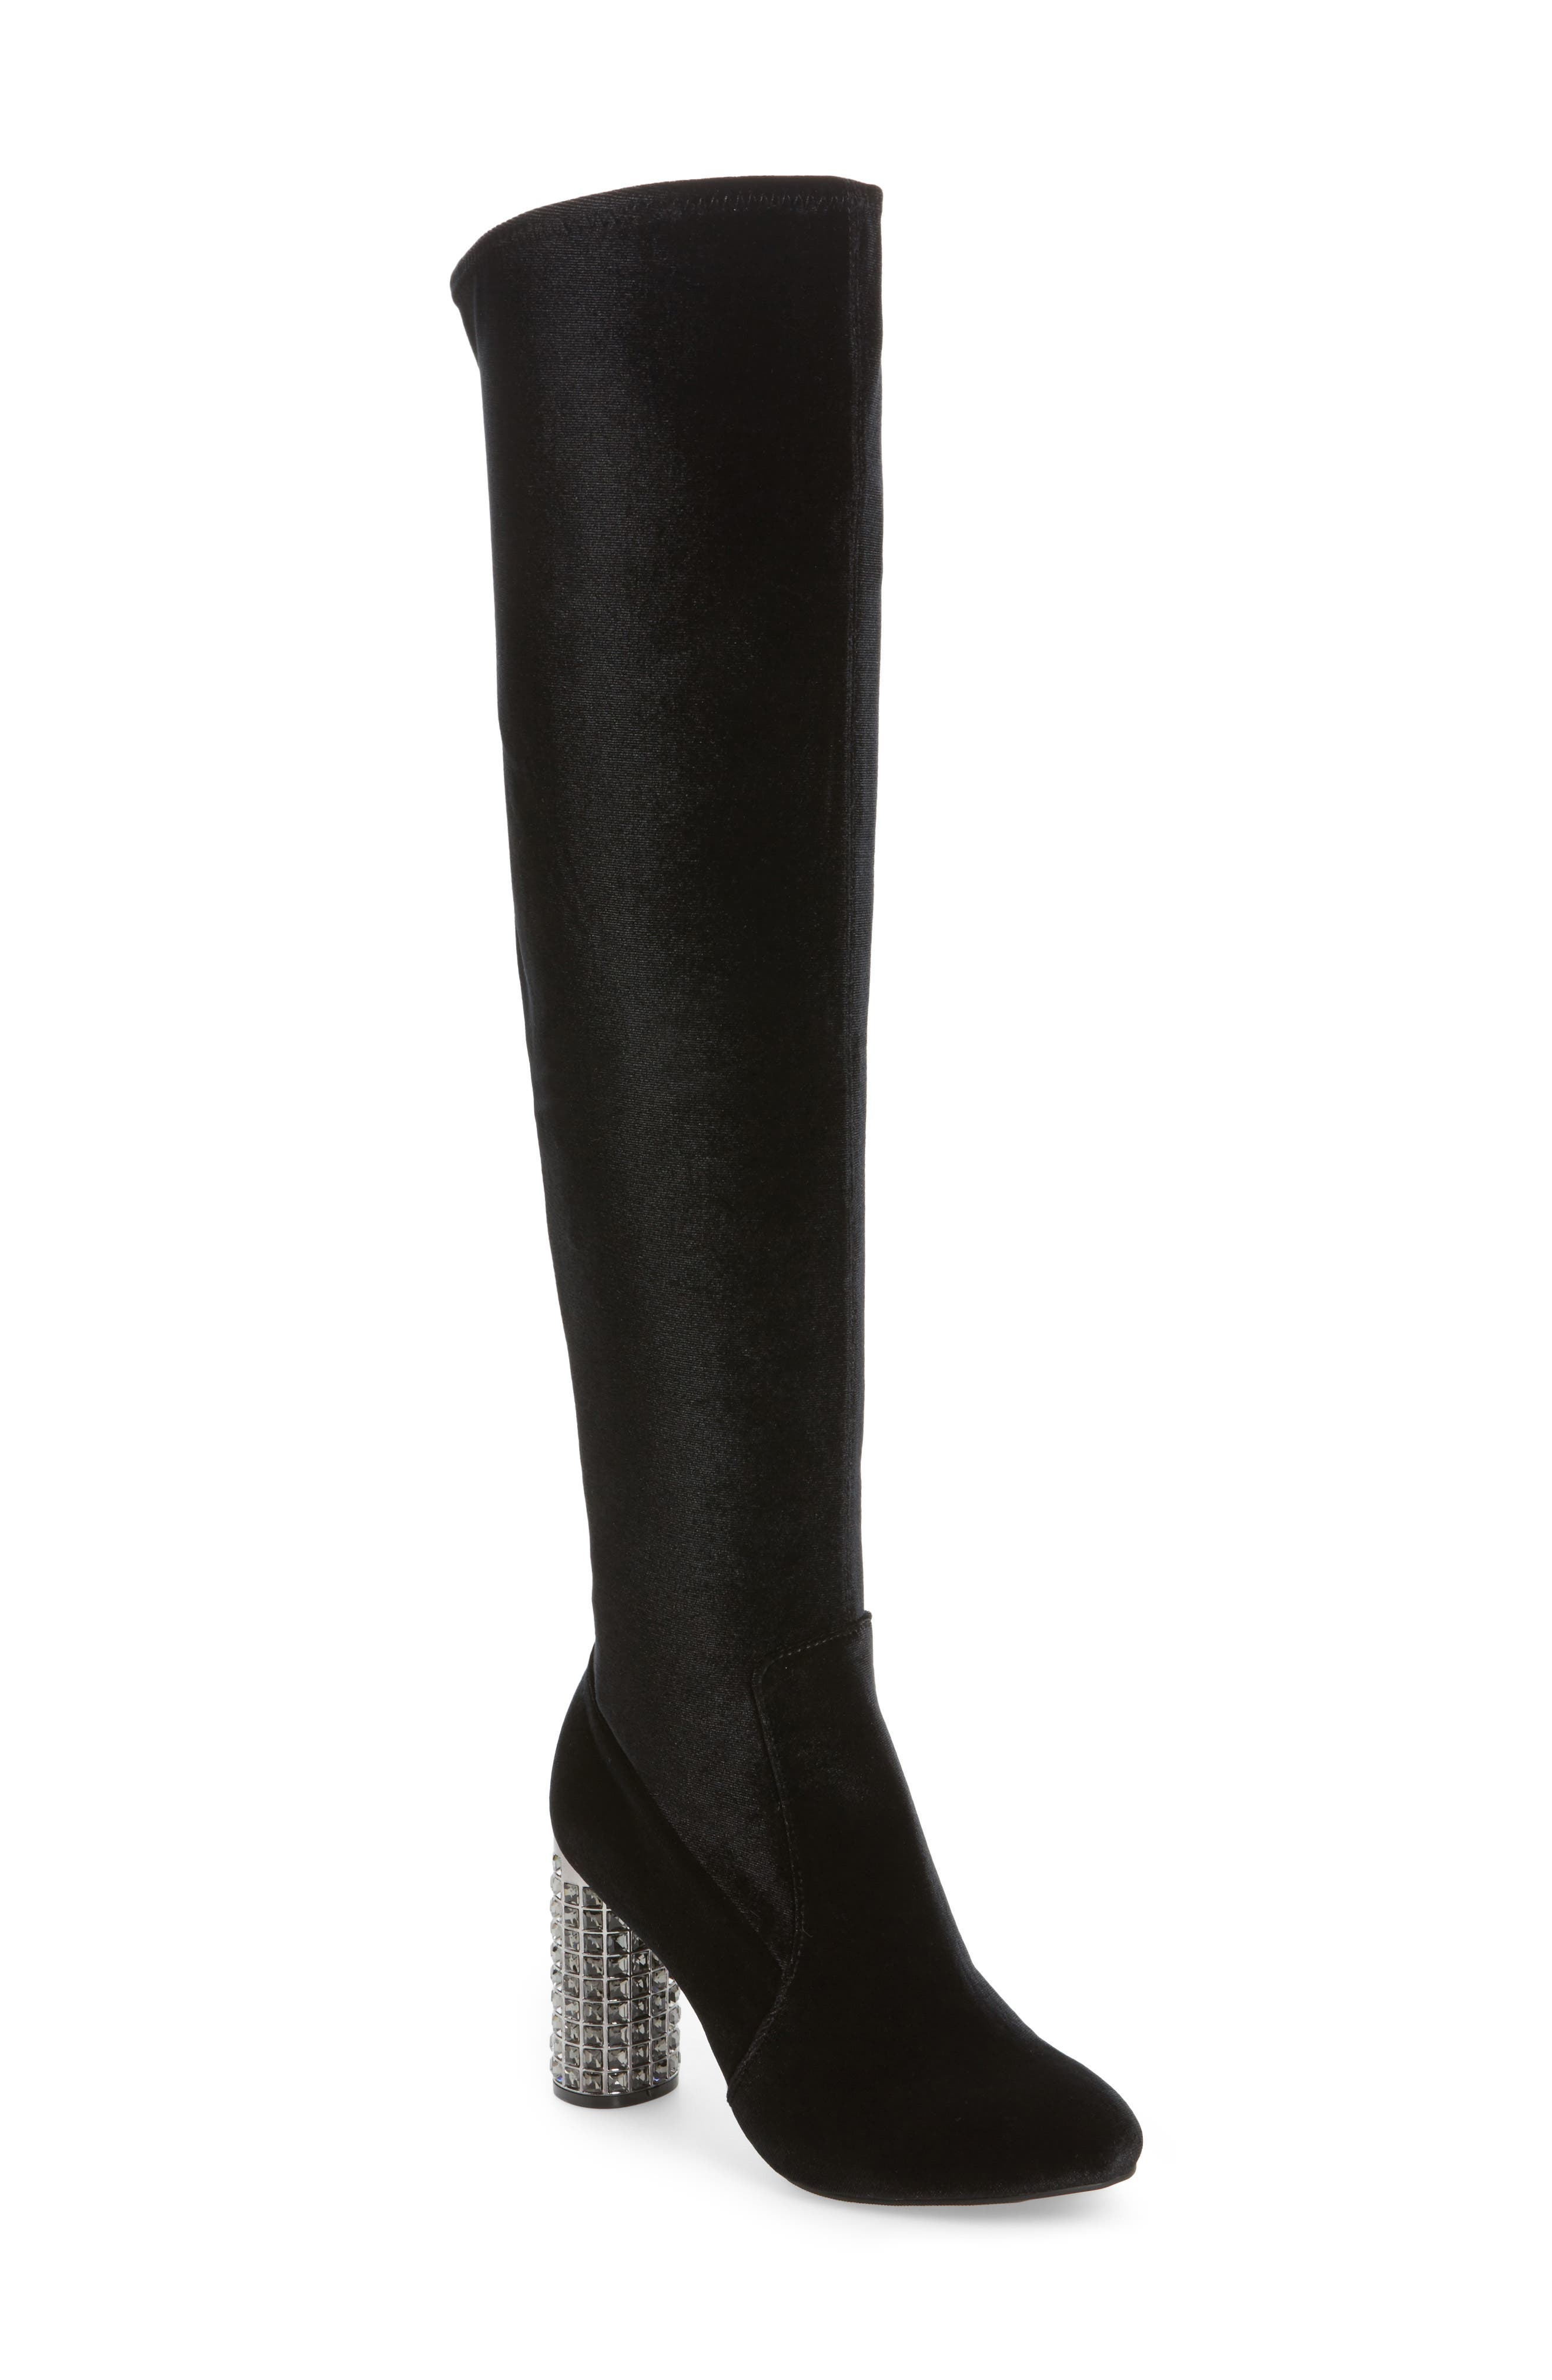 Itzela Over the Knee Boot,                             Main thumbnail 1, color,                             003